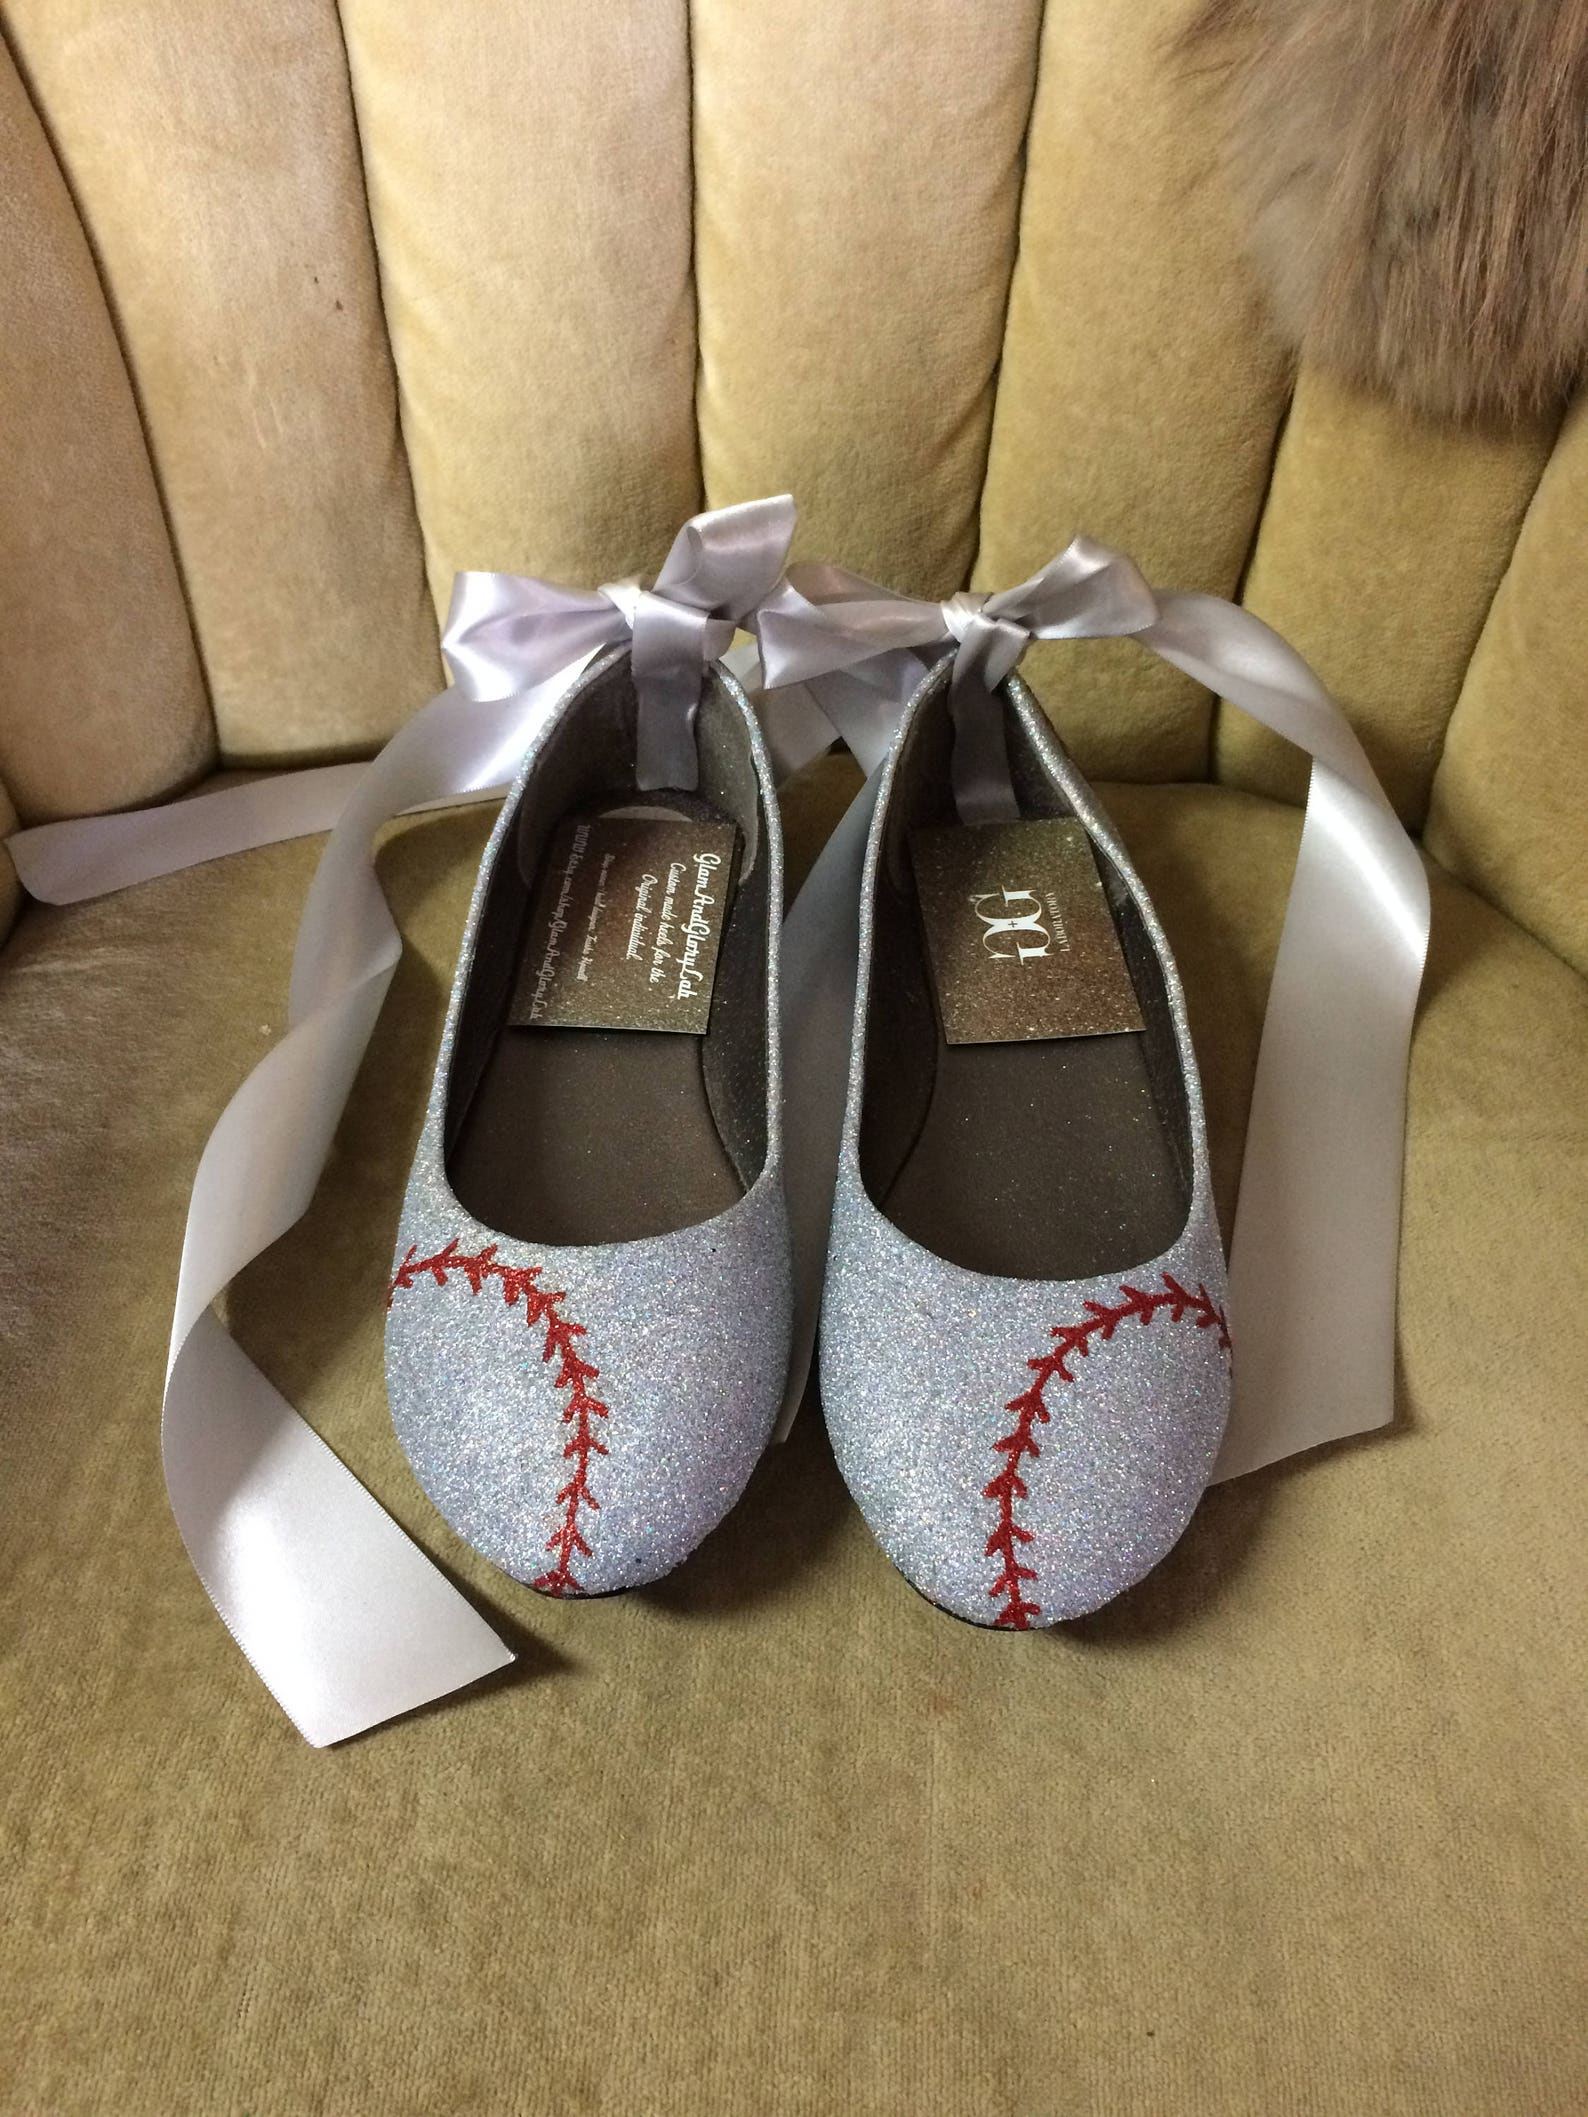 custom made to order lace up baseball ballet flats. baseball stitched holographic silver and navy blue flats. womans us sizes 5-